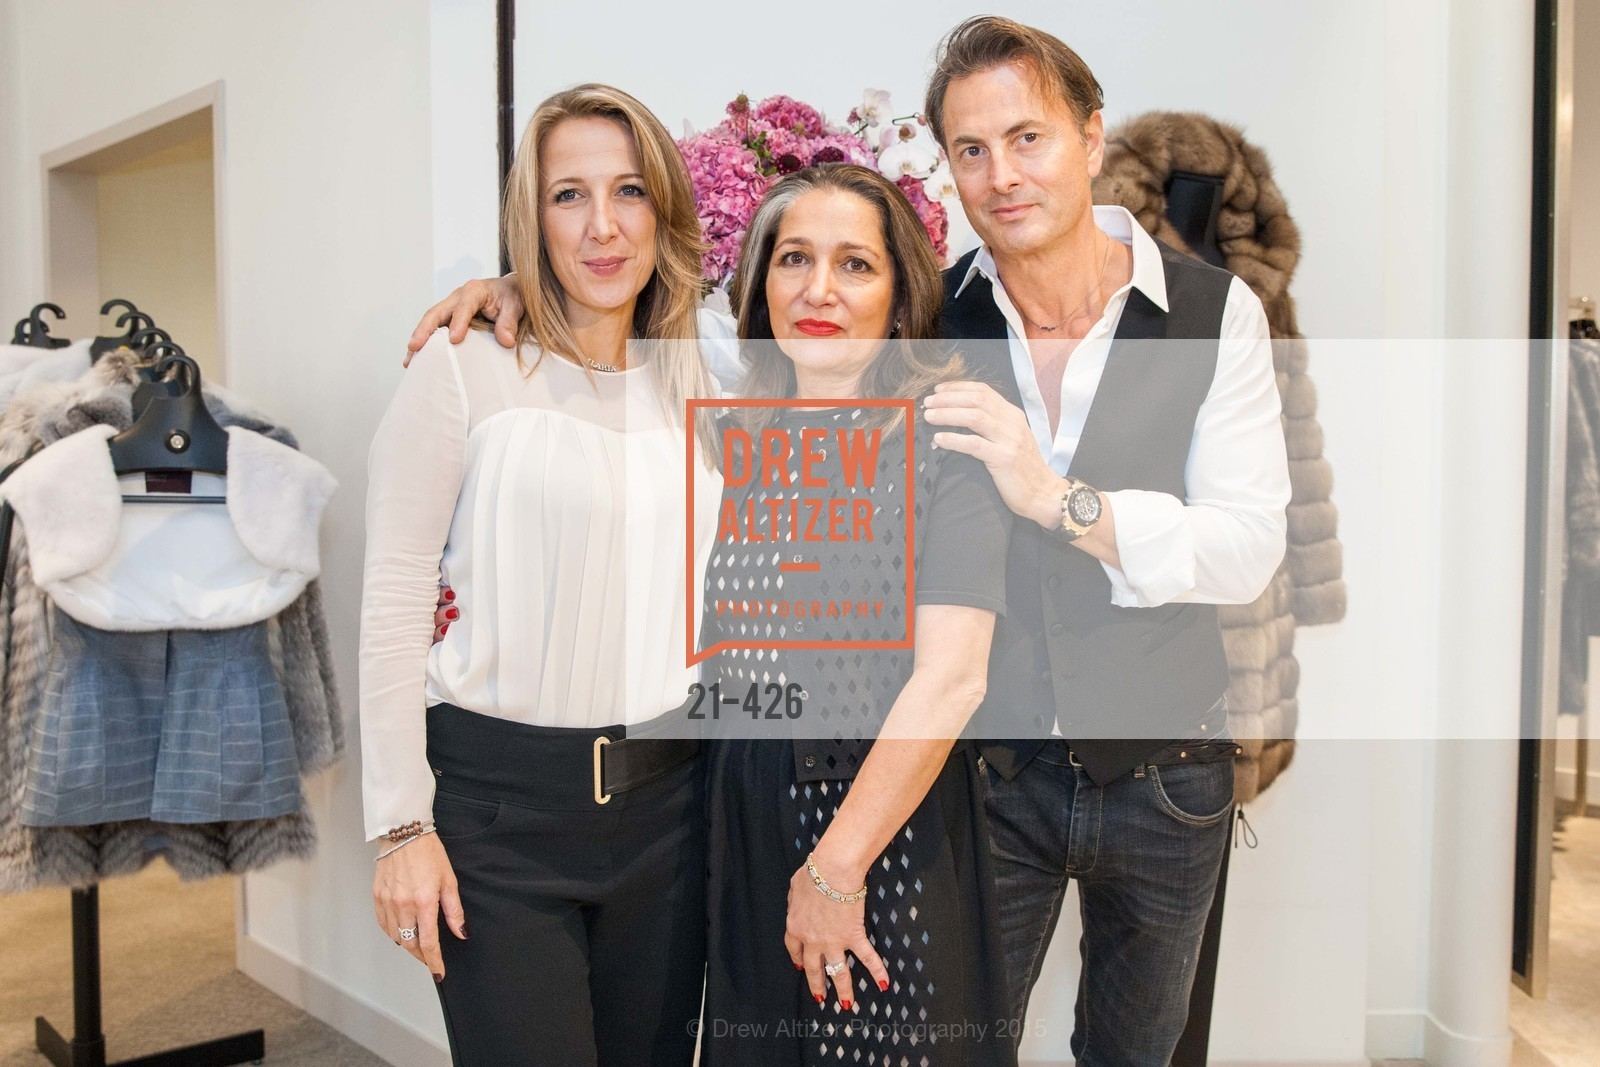 Ilaria Fabbri, Josephine Kathan, Brunello Rindi, Rindi at Saks Fur Salon, Saks Fifth Avenue, Fur Salon, October 29th, 2015,Drew Altizer, Drew Altizer Photography, full-service agency, private events, San Francisco photographer, photographer california